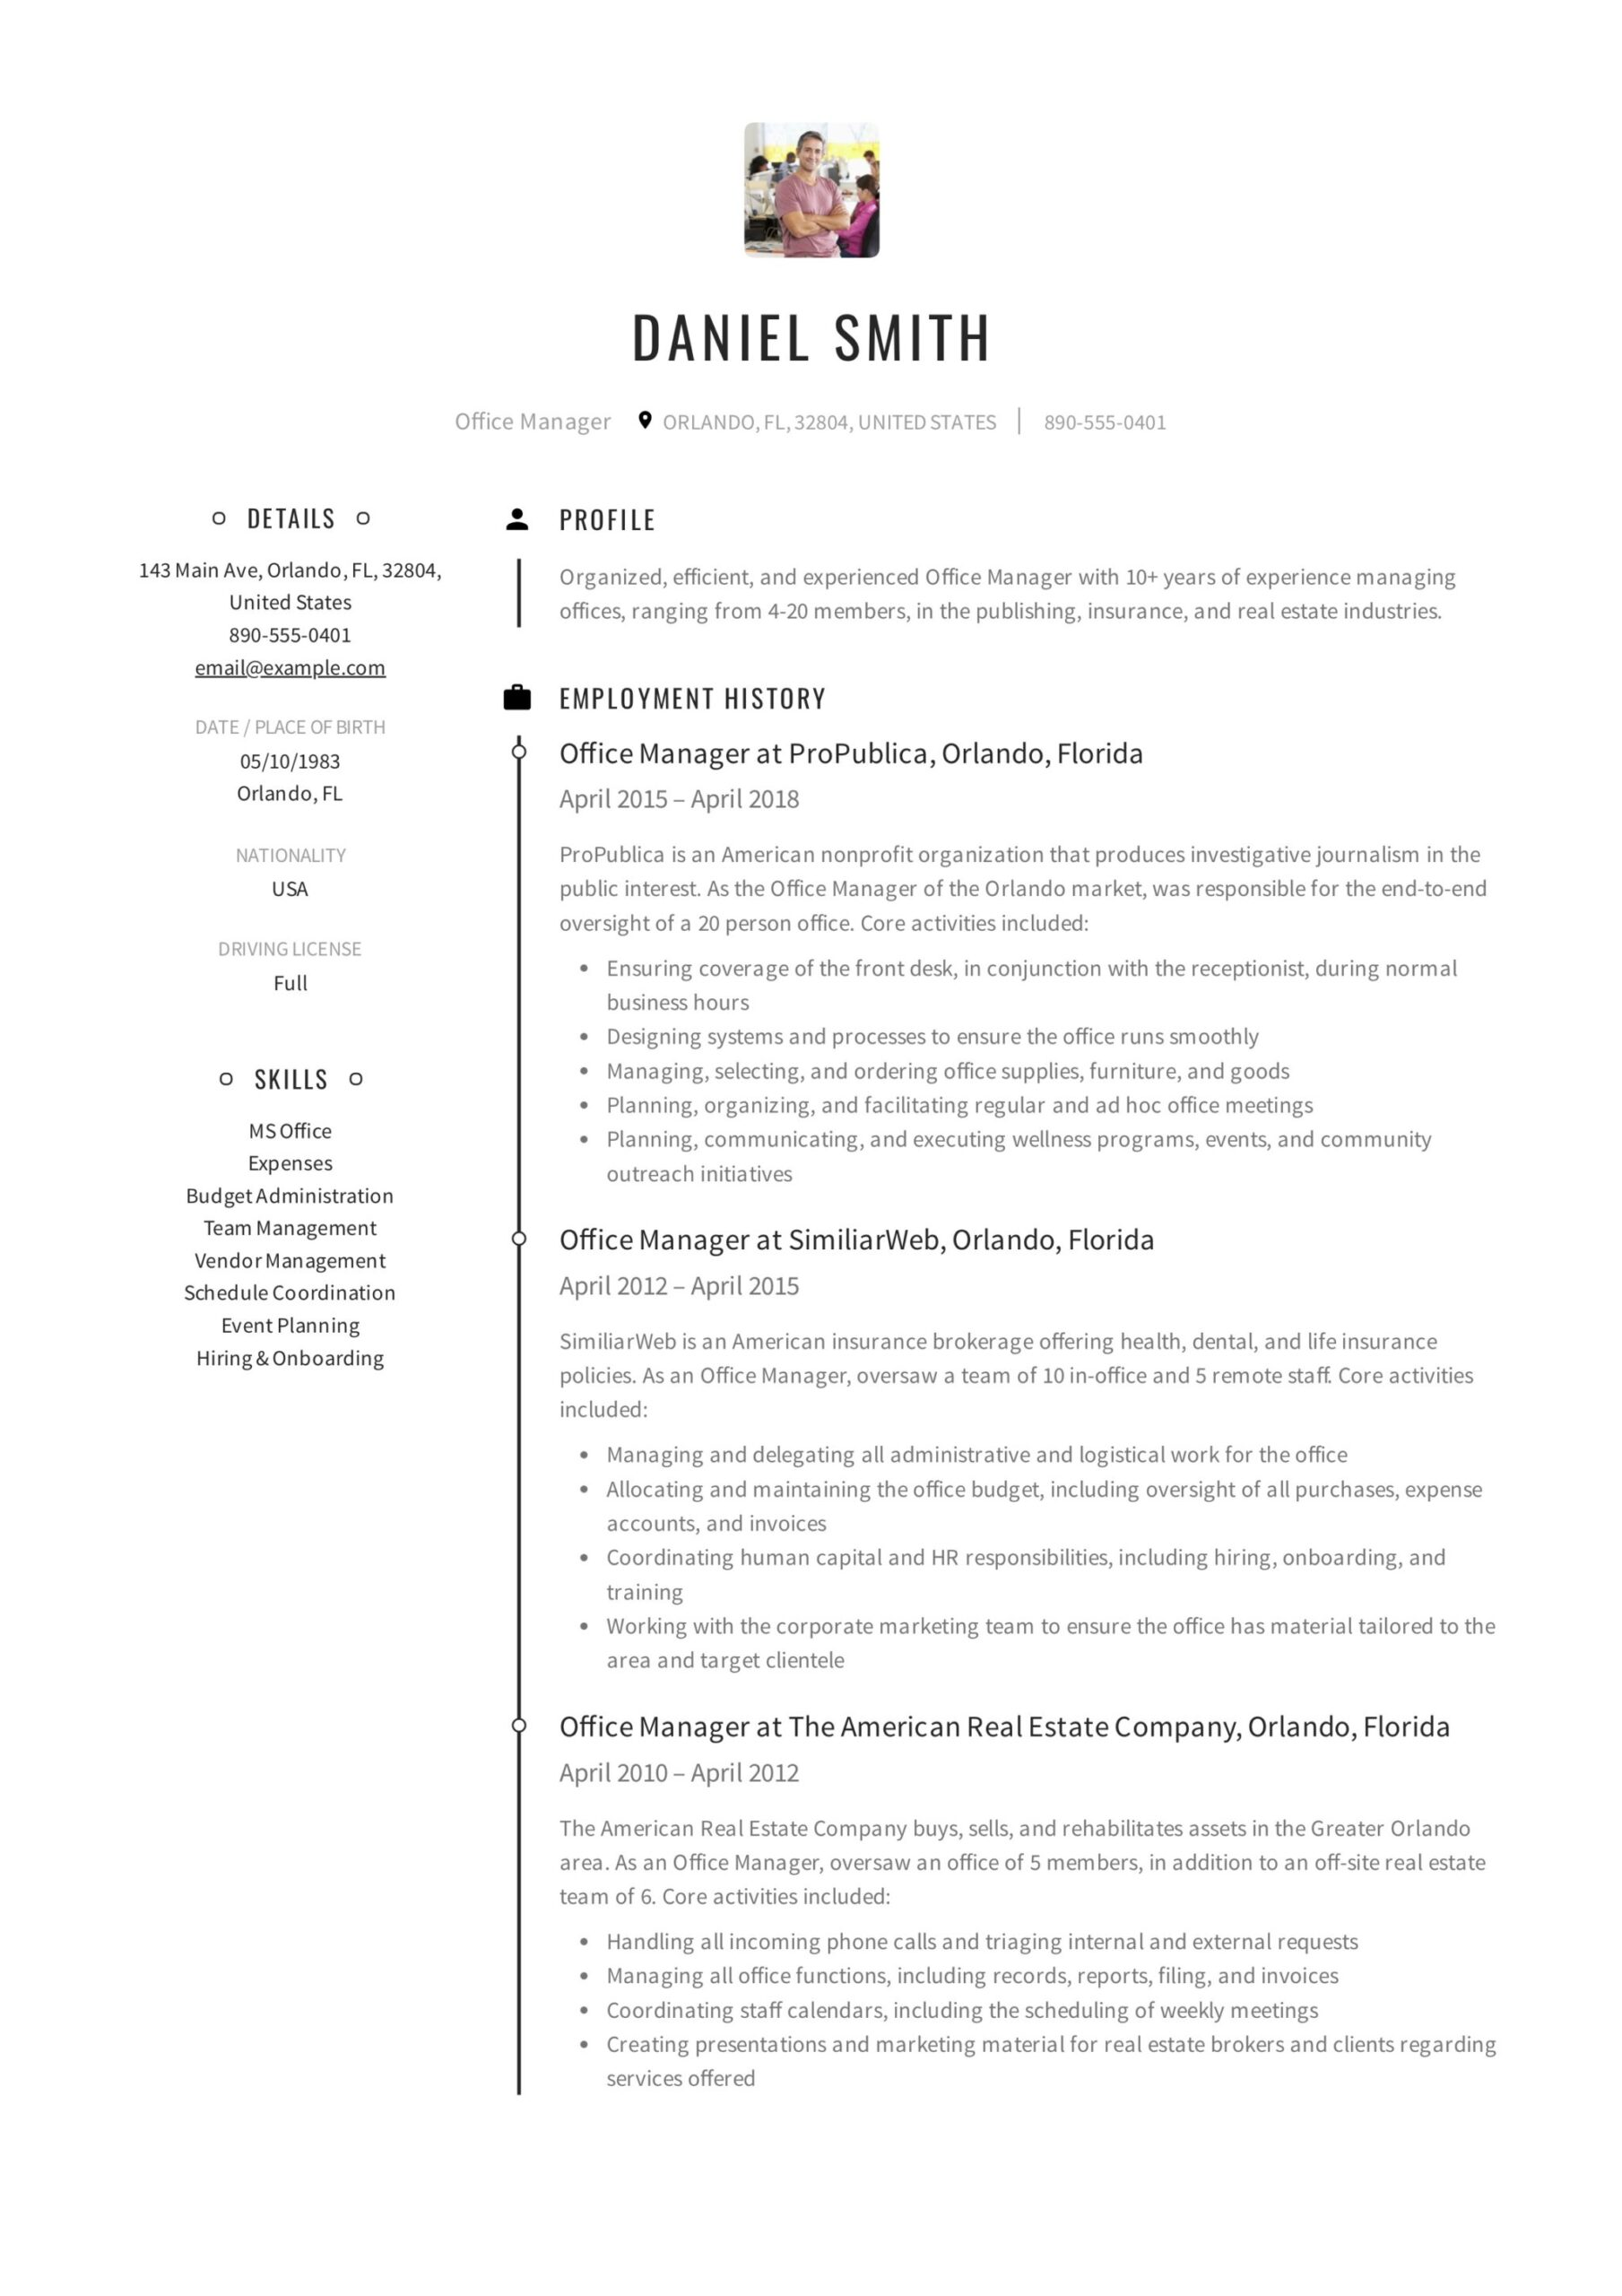 office manager resume guide samples pdf examples example purchasing community all format Resume Office Manager Resume Examples 2019